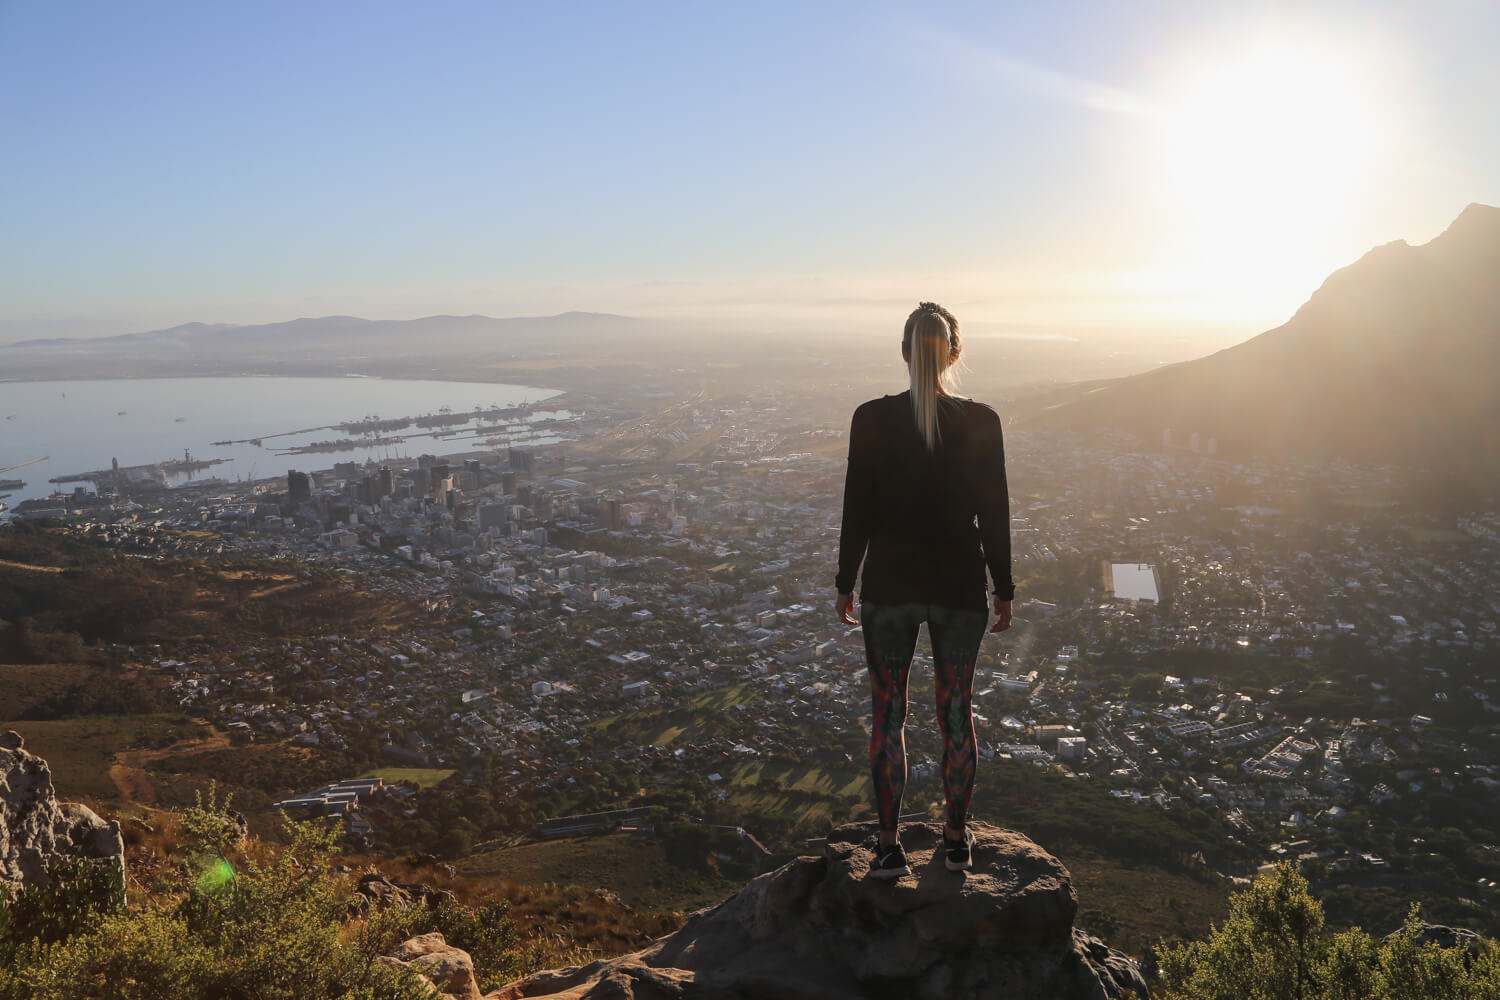 A woman in athletic clothes from a South Africa packing list stands on top of Lion's Head overlooking Cape Town below